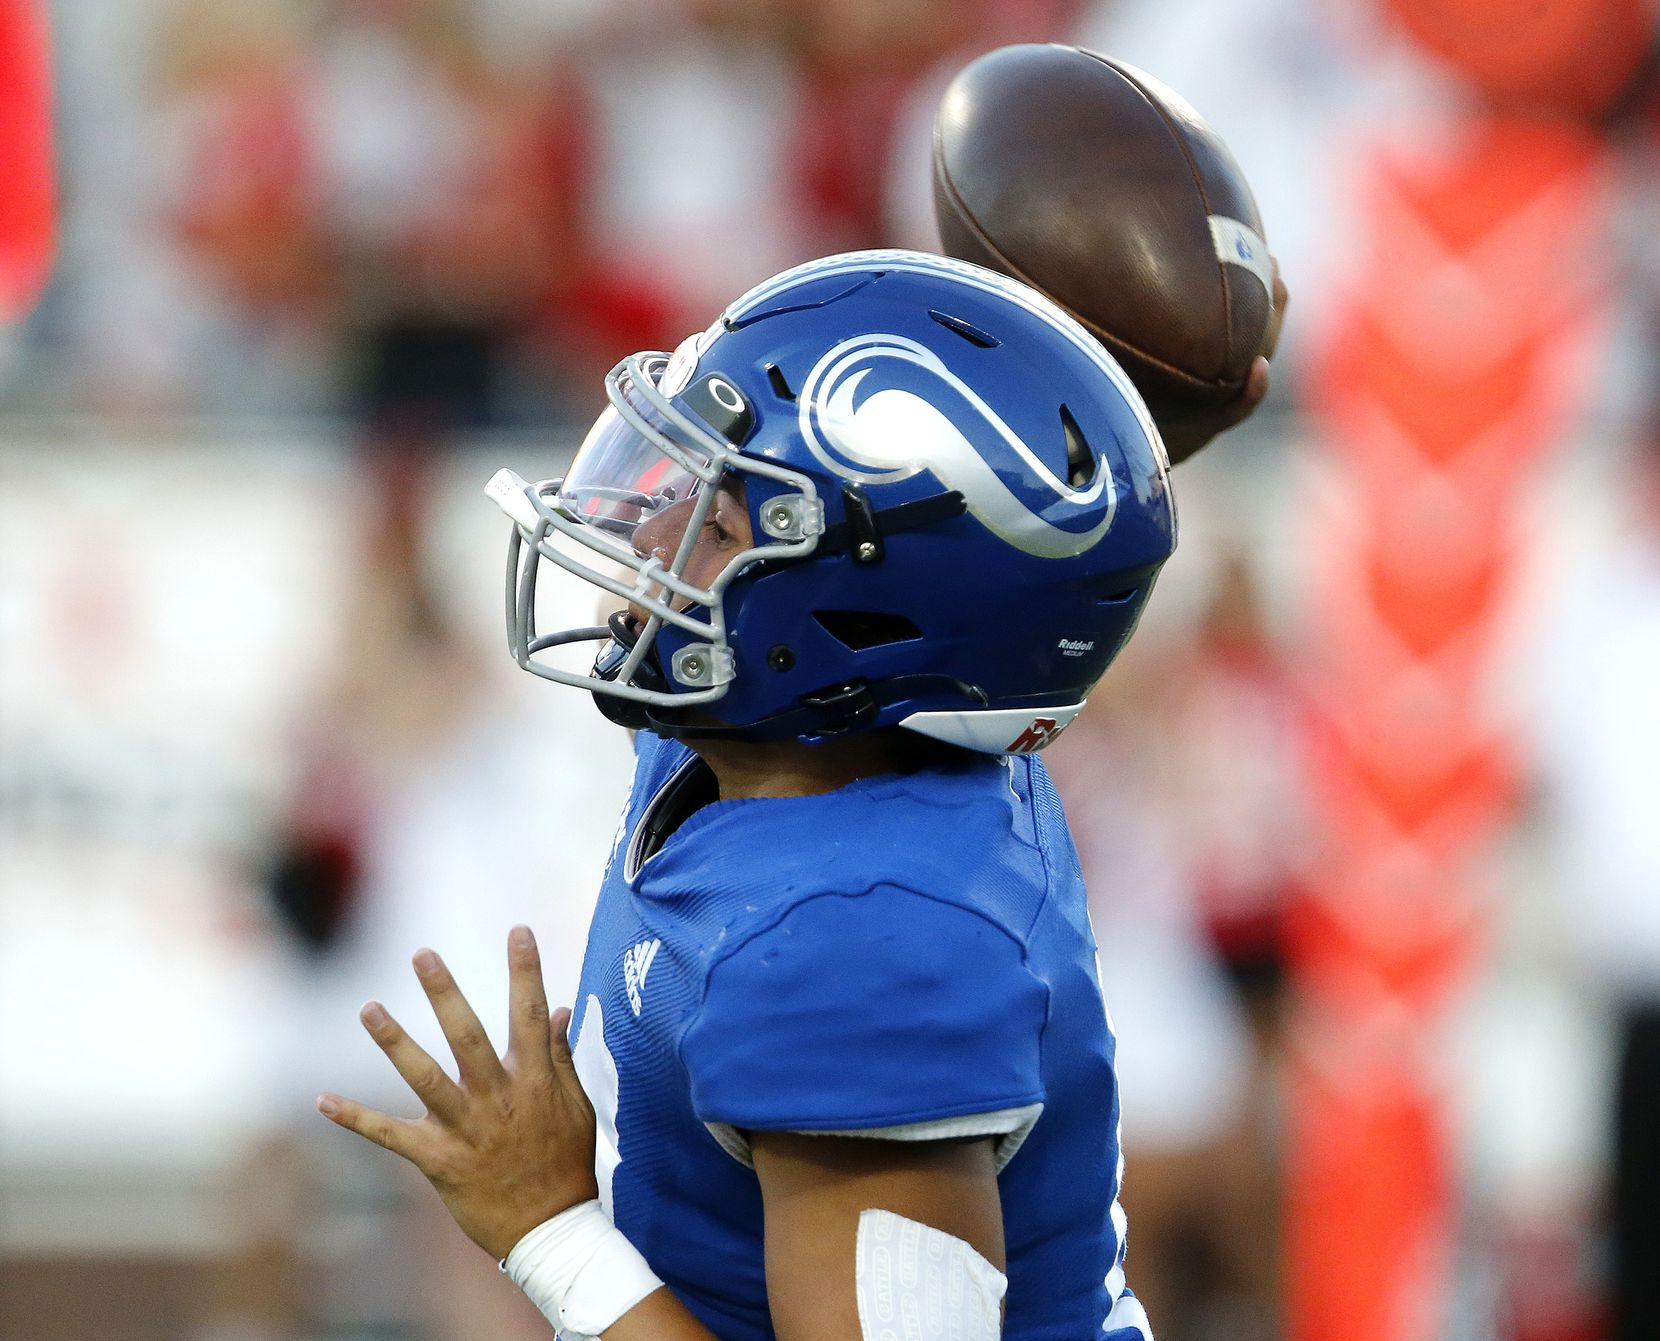 Nolan Catholic High School quarterback Cole Matsuda (10) launches a pass during the first half as Argyle High School hosted Nolan Catholic High School at Eagle Stadium in Allen on Saturday evening, August 28, 2021. (Stewart F. House/Special Contributor)